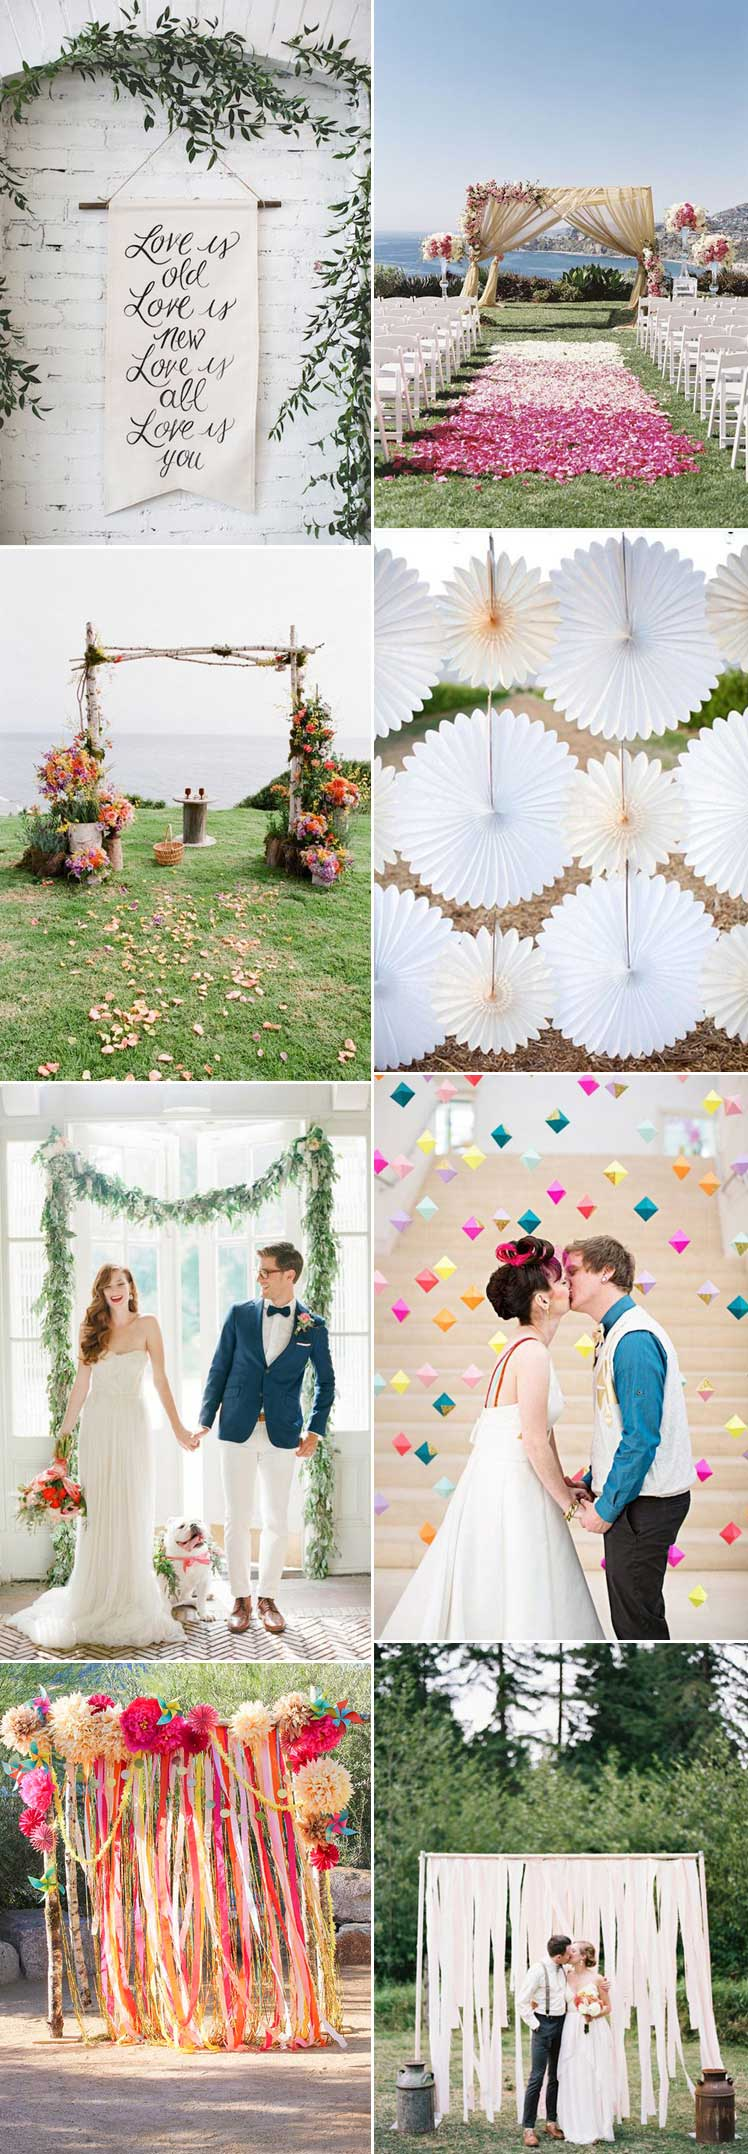 gorgeous ideas for a wedding backdrop